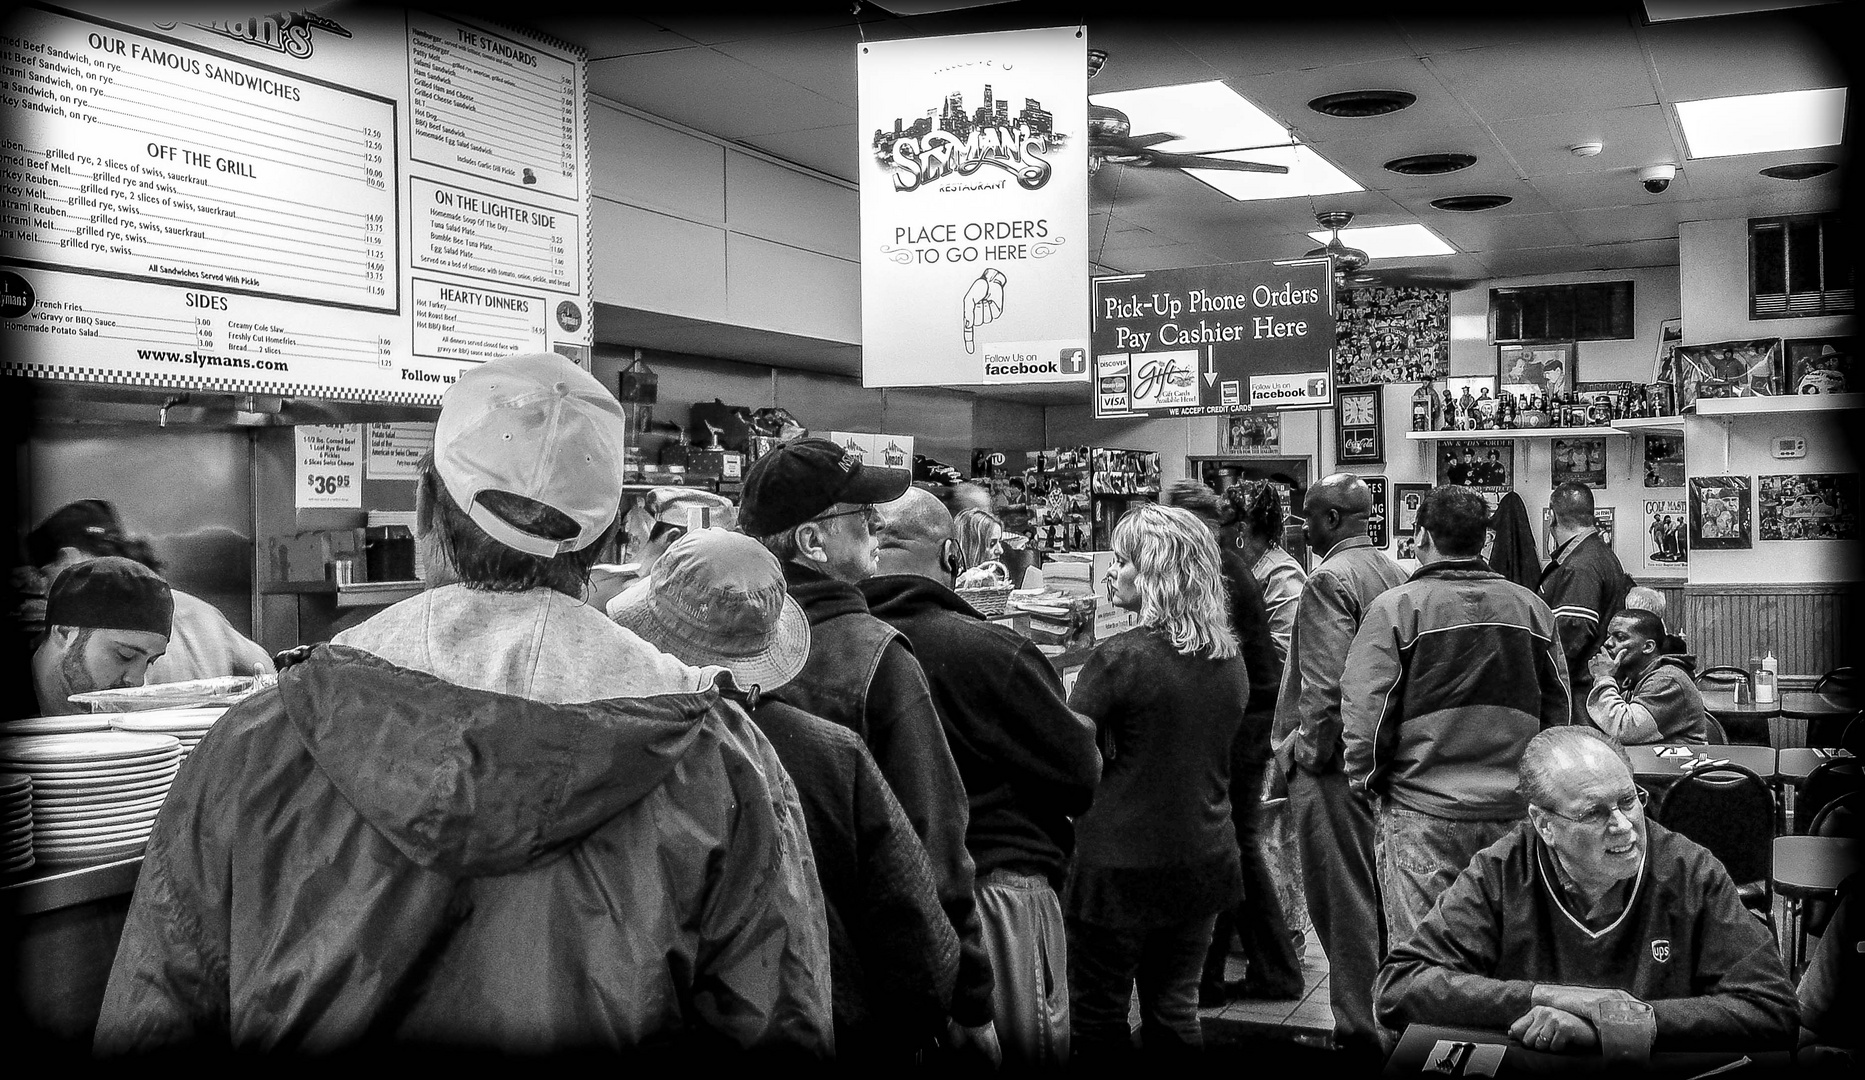 Waiting in Line at Slyman's Deli